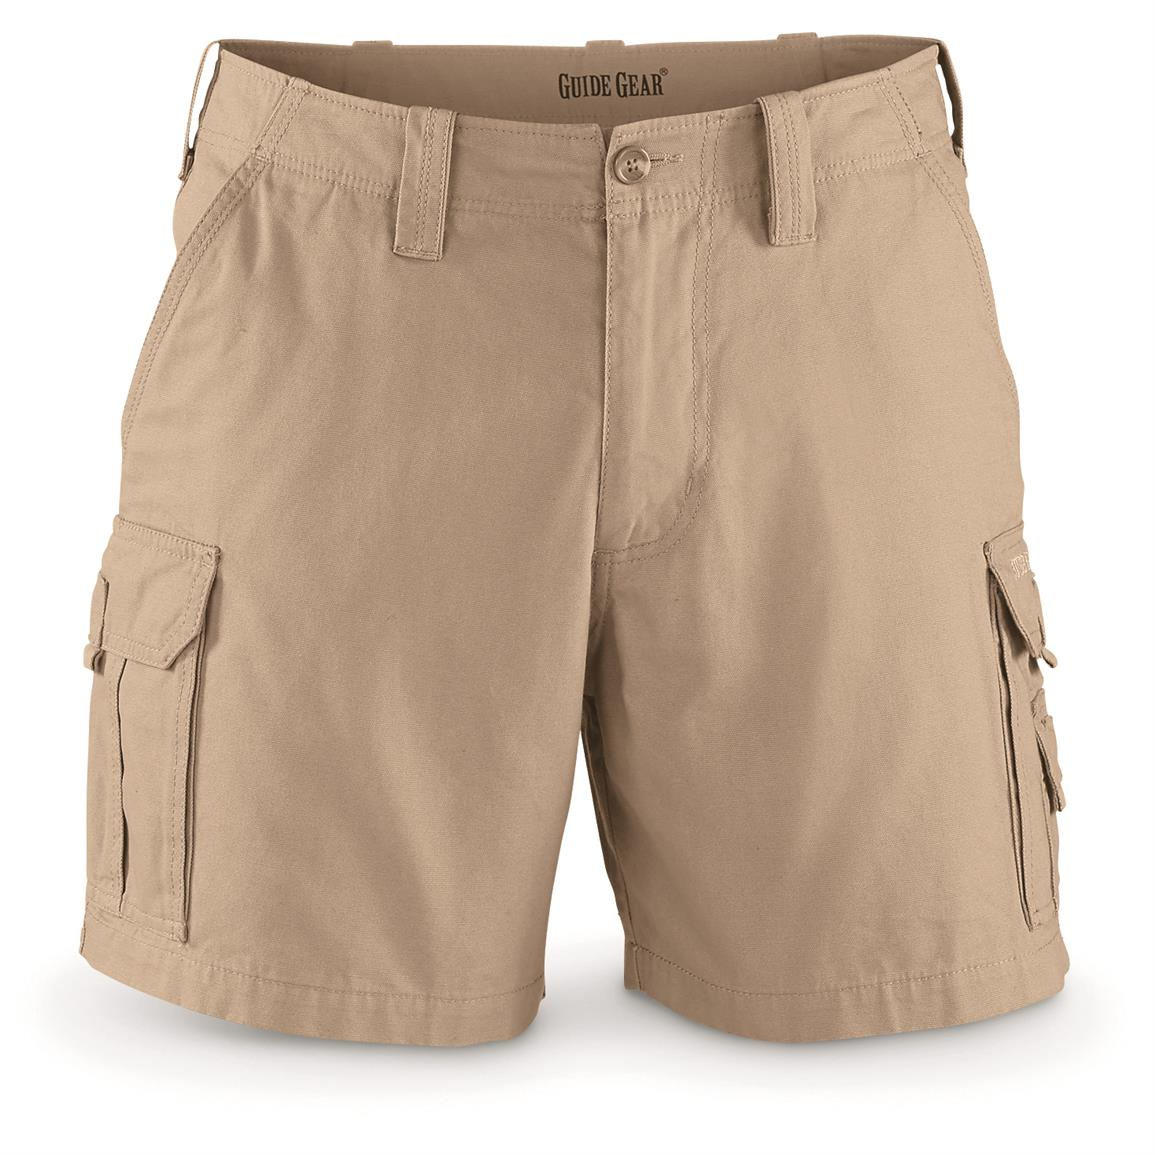 "Guide Gear Men's Outdoor Cargo Shorts, Khaki, 6"" inseam"